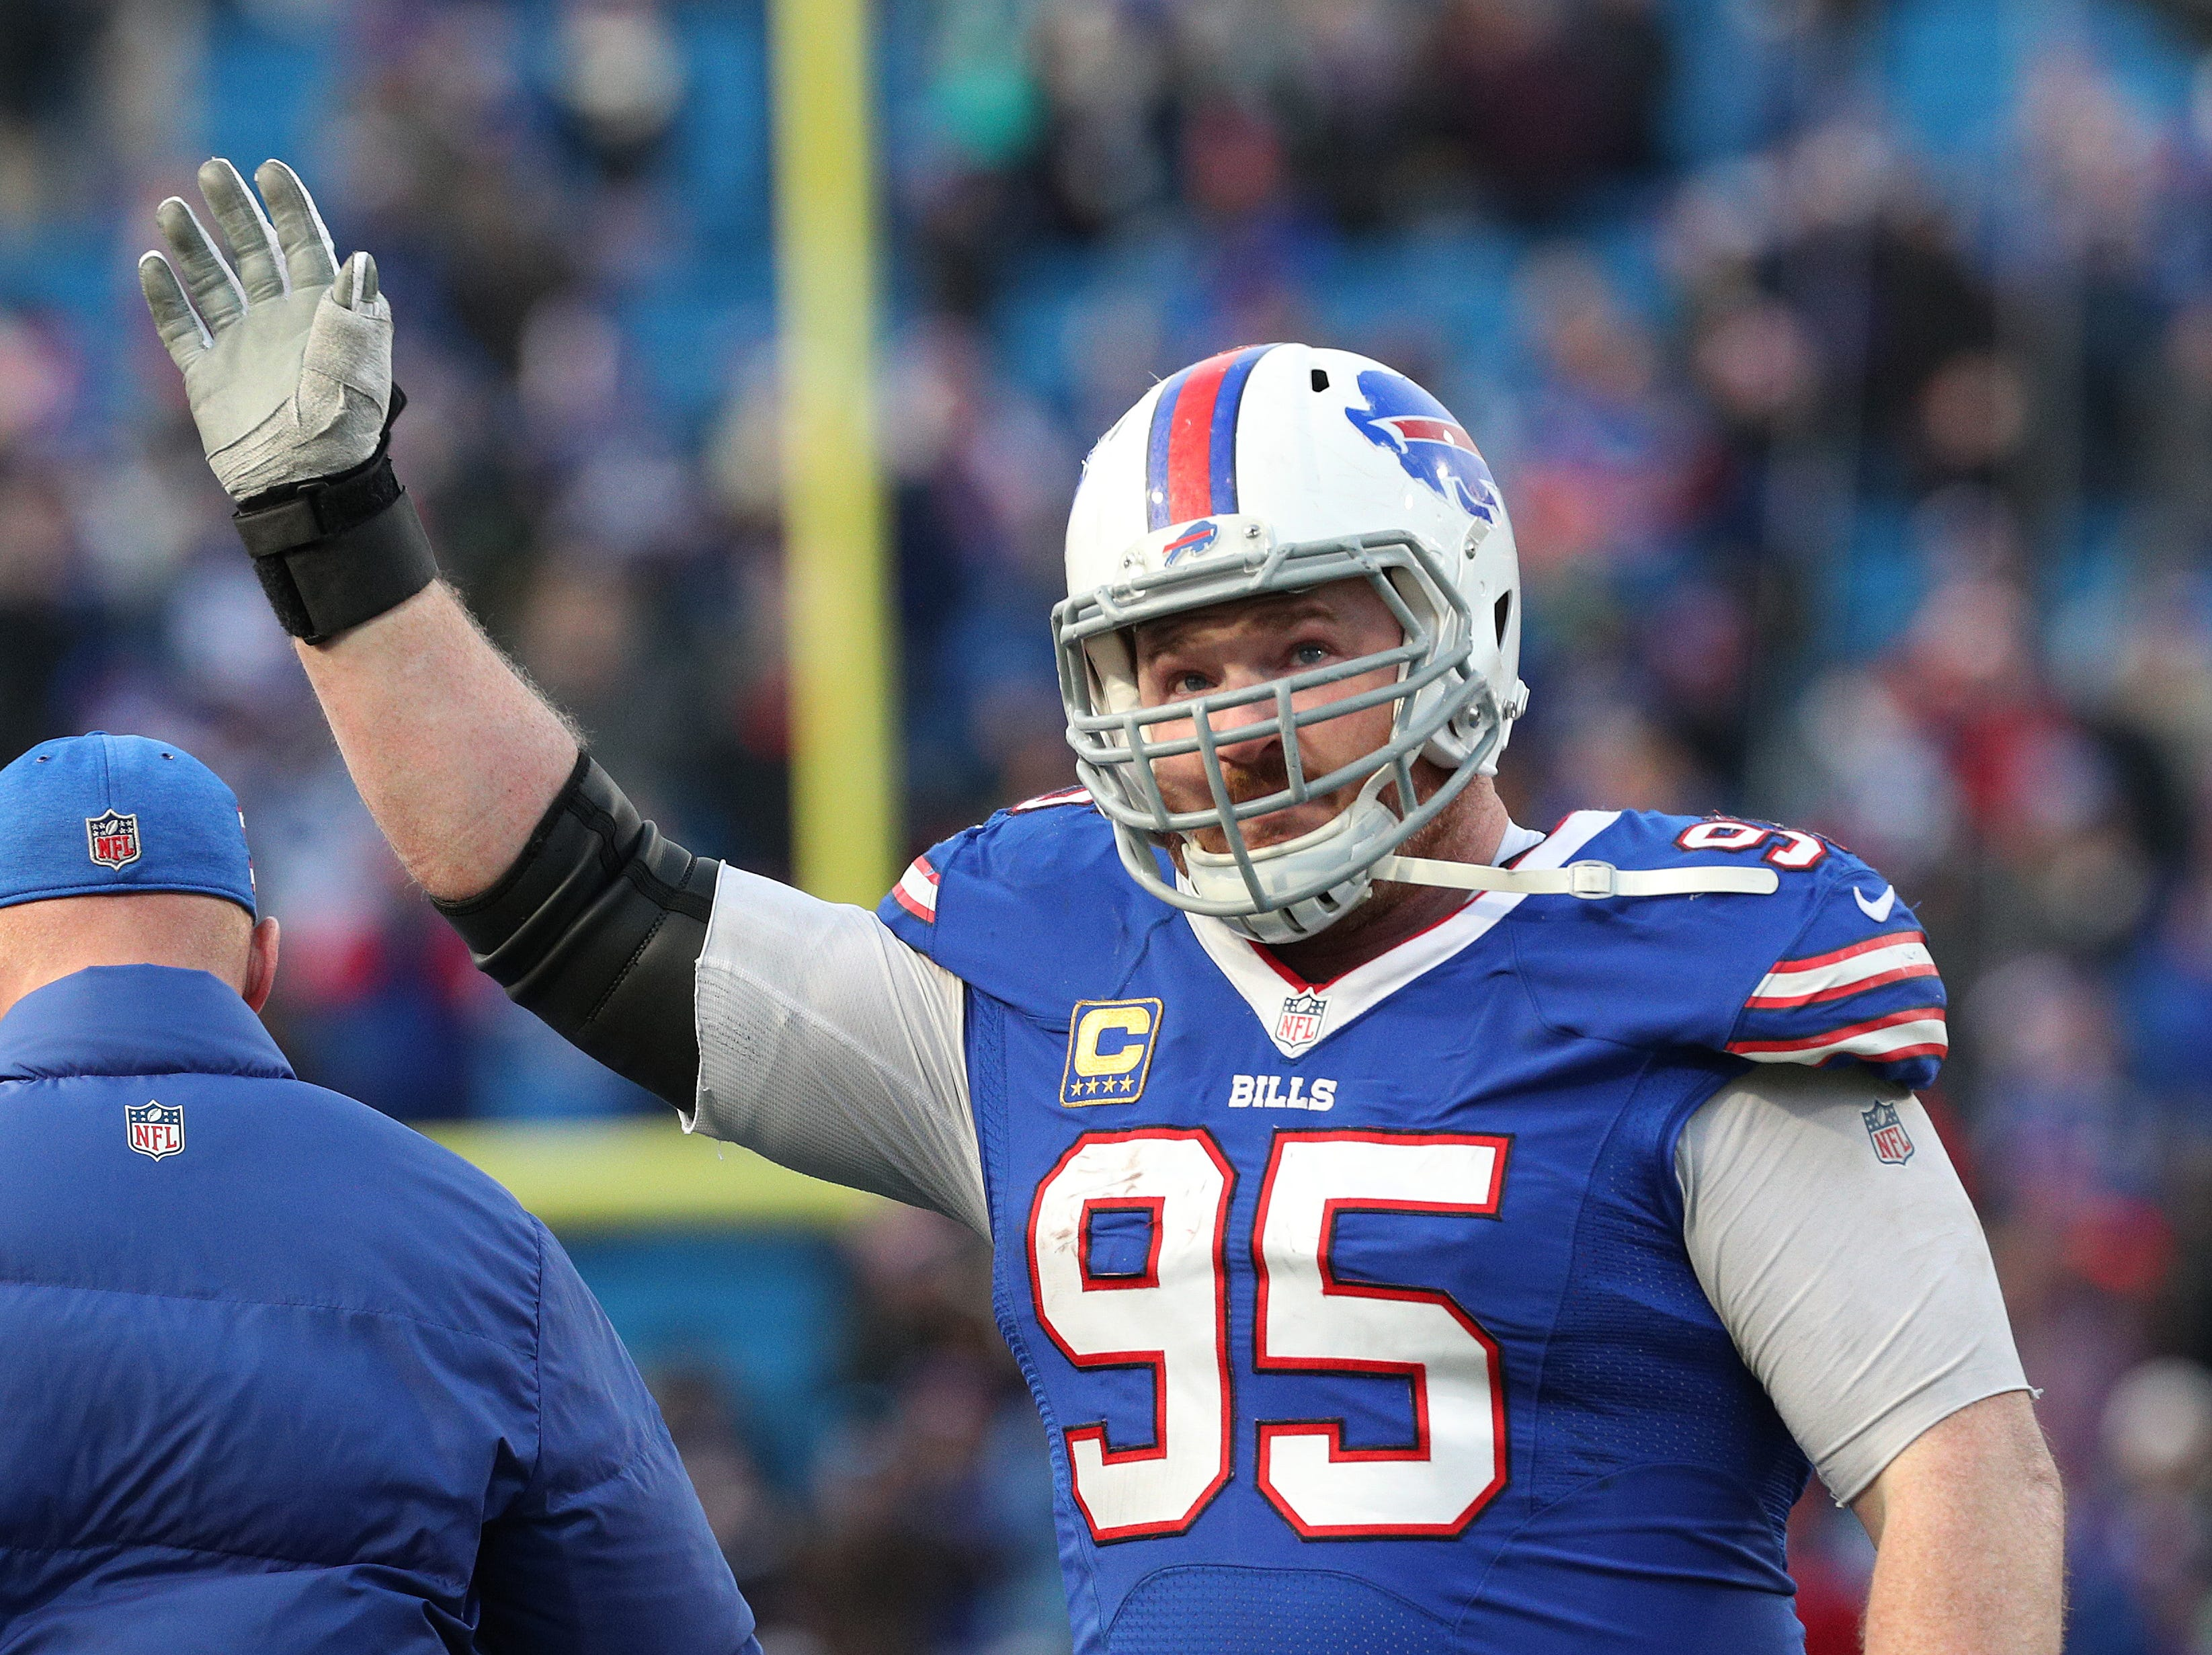 Bills Kyle Williams waves to the crowd as he is removed from the game for the final time.  Williams is retiring after a 13-year career.